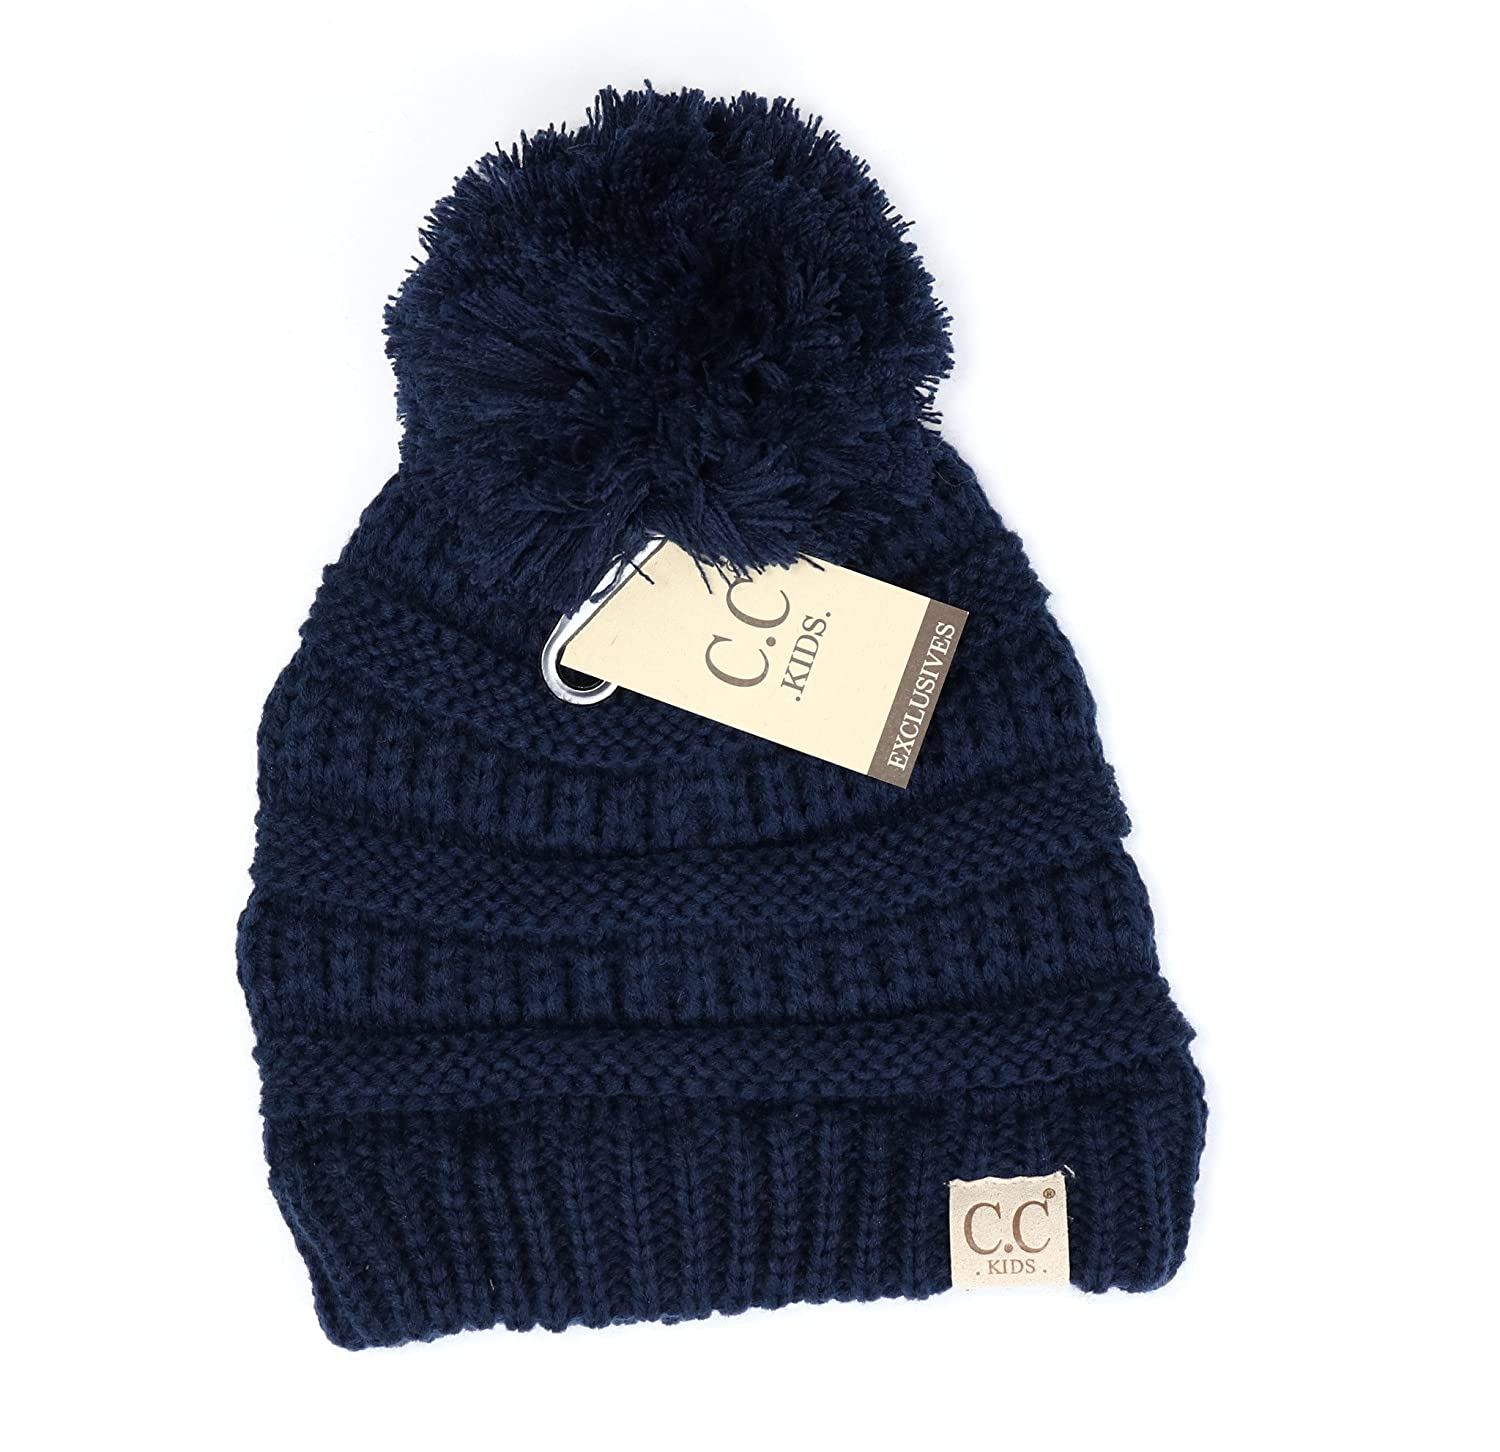 8f9b54554f5 Women s Kids Solid Pom CC Beanies One Size Black at Amazon Women s Clothing  store